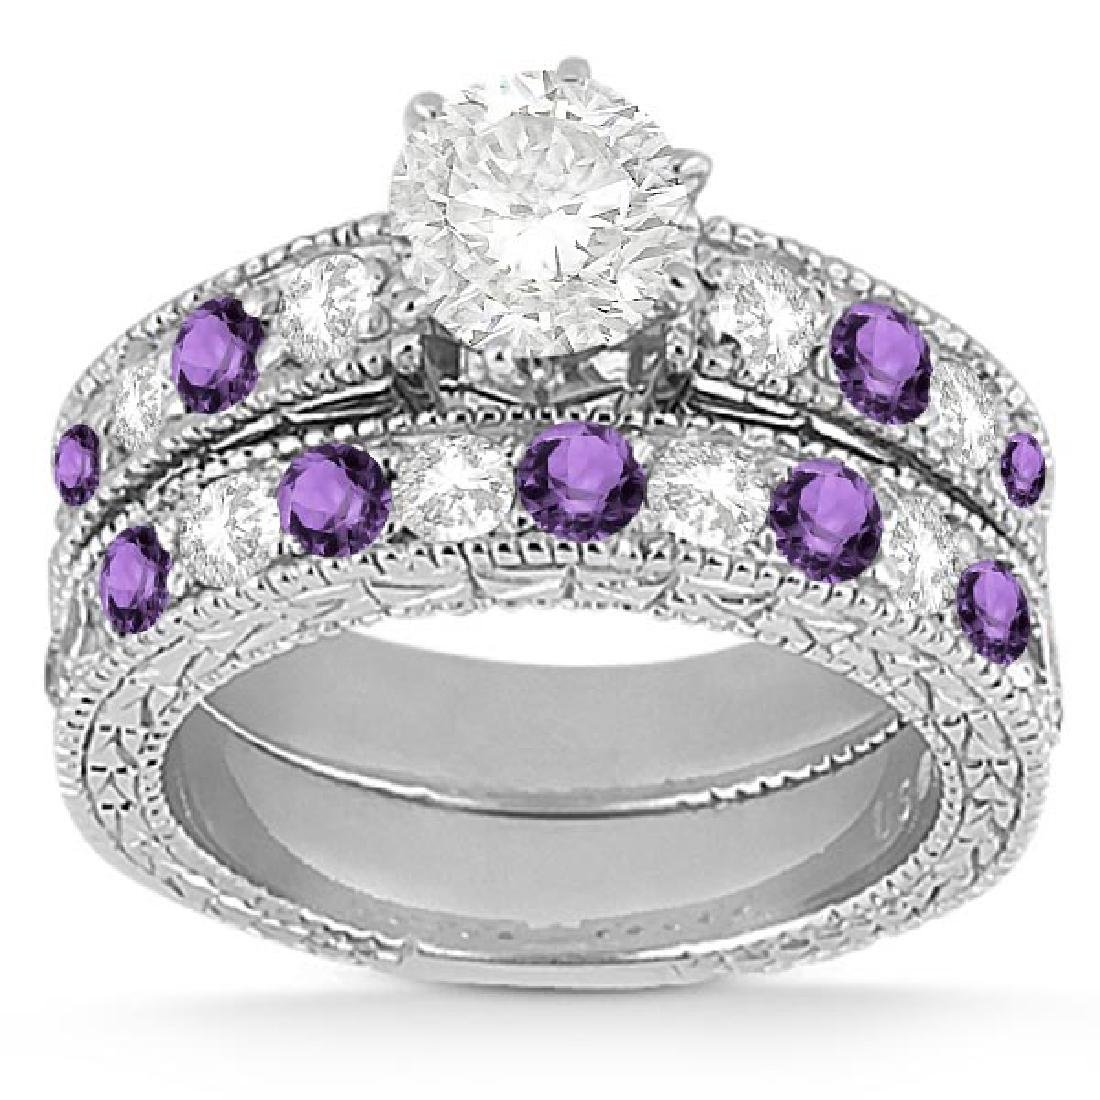 Antique Diamond and Amethyst Bridal Set 14k White Gold